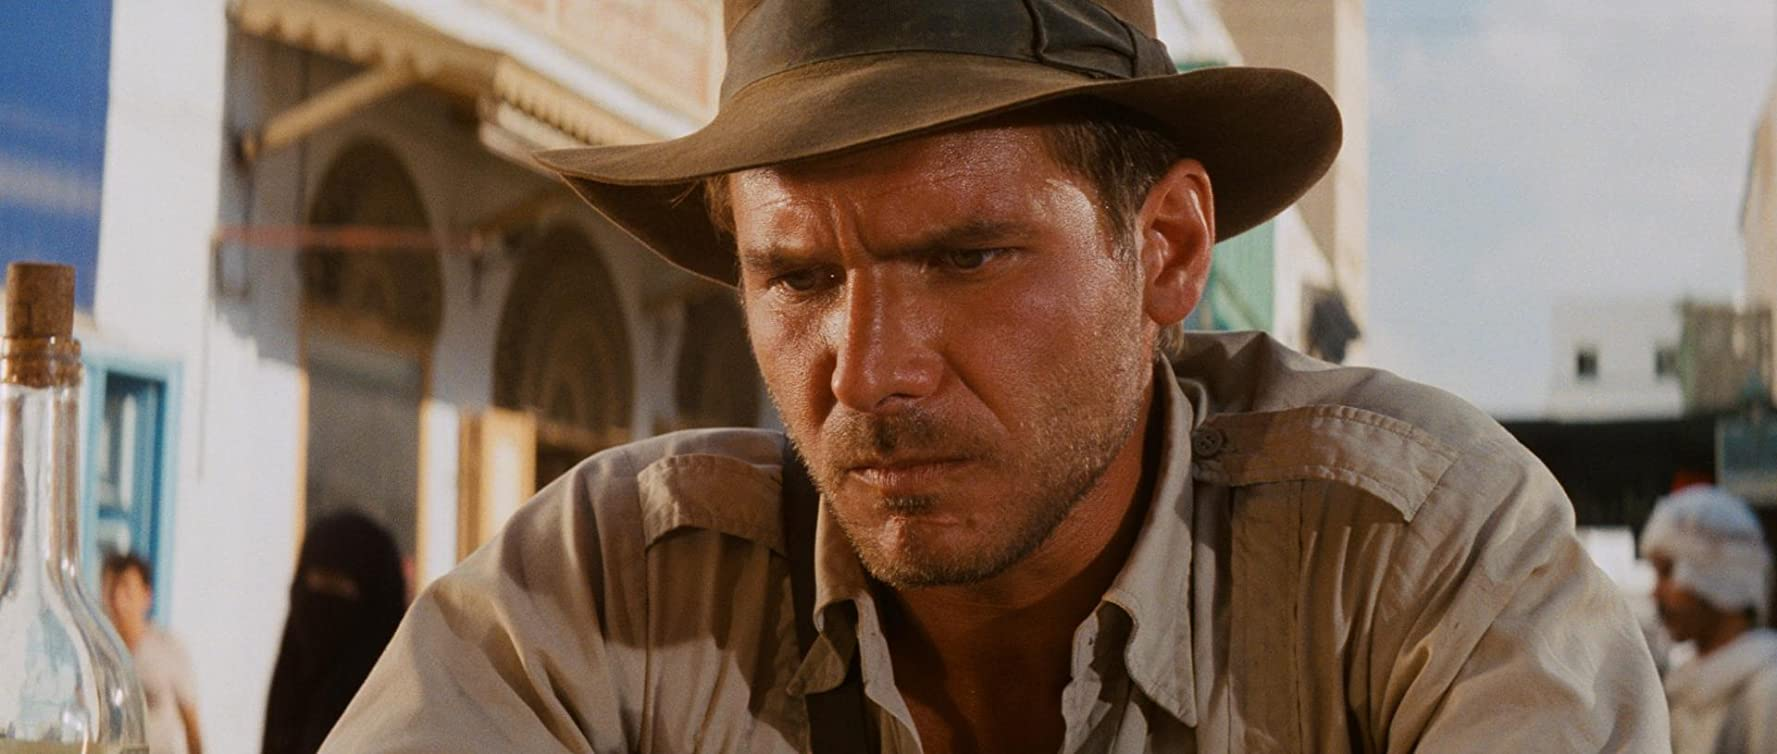 Harrison Ford in Raiders of the Lost Ark (1981)